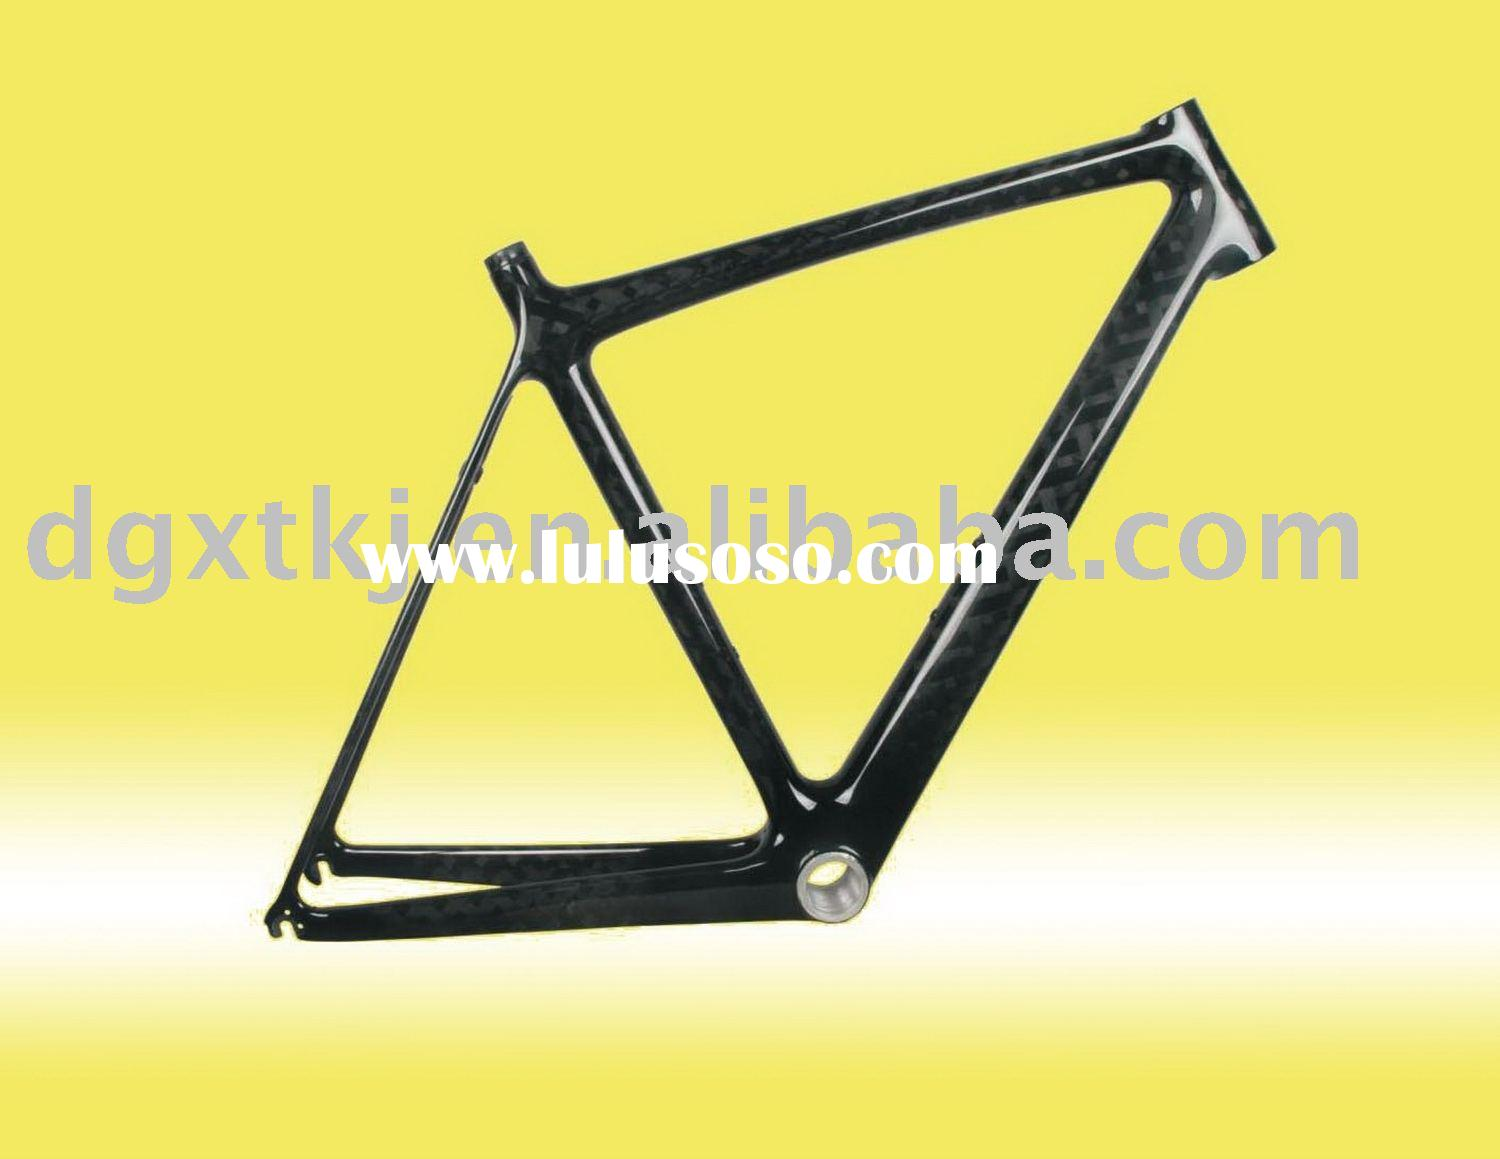 Bicycle frame & full carbon frame &bicycle parts with 700C wheels